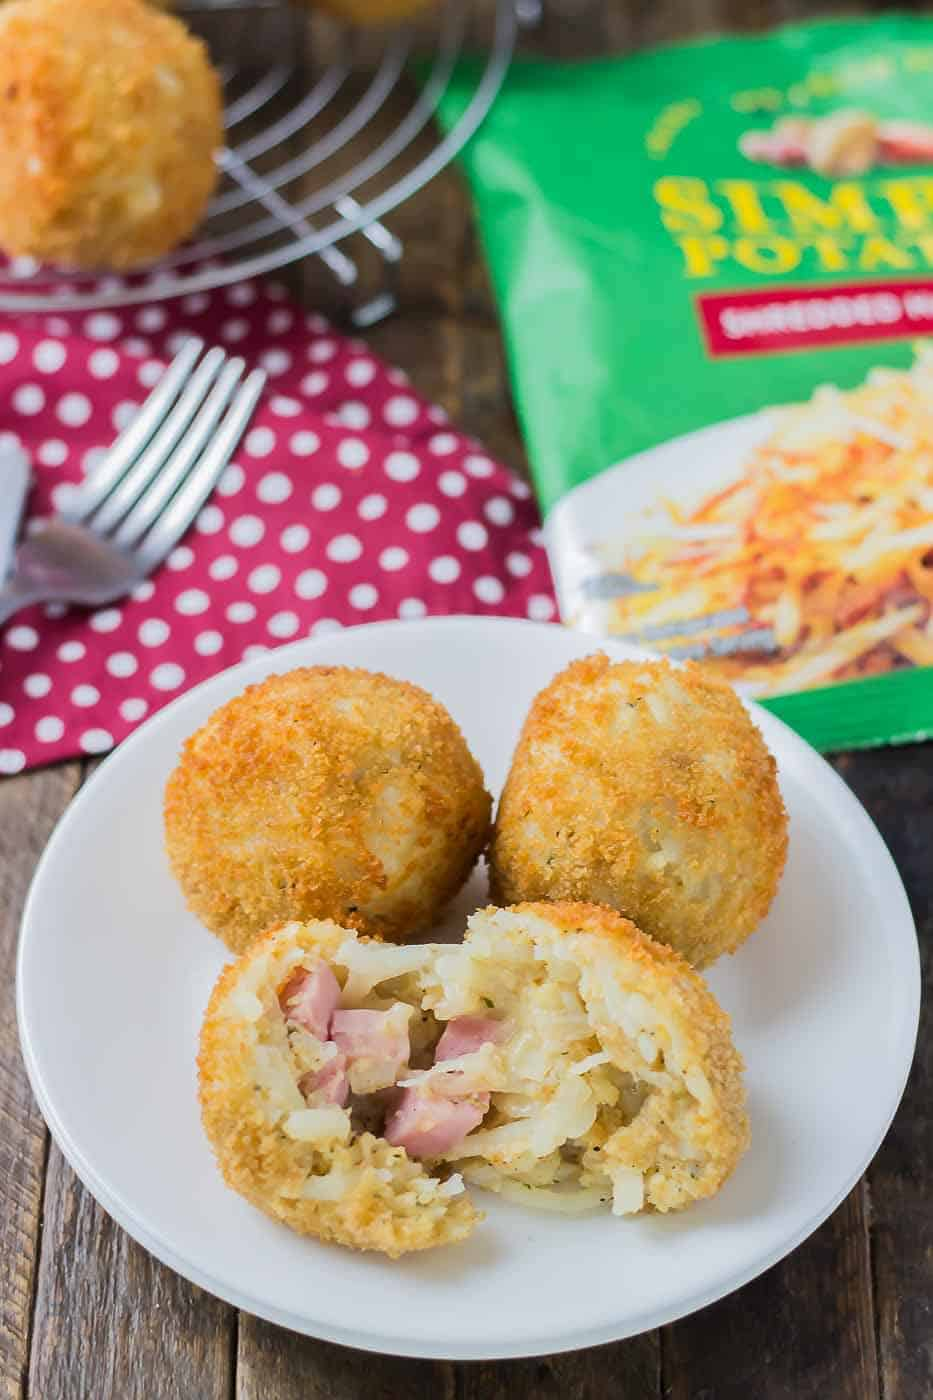 Crispy, crunchy and packed with ham and cheesy goodness, these Ham and Cheese Stuffed Hash Brown Balls should be on your next breakfast and brunch table! | Strawberry Blondie Kitchen